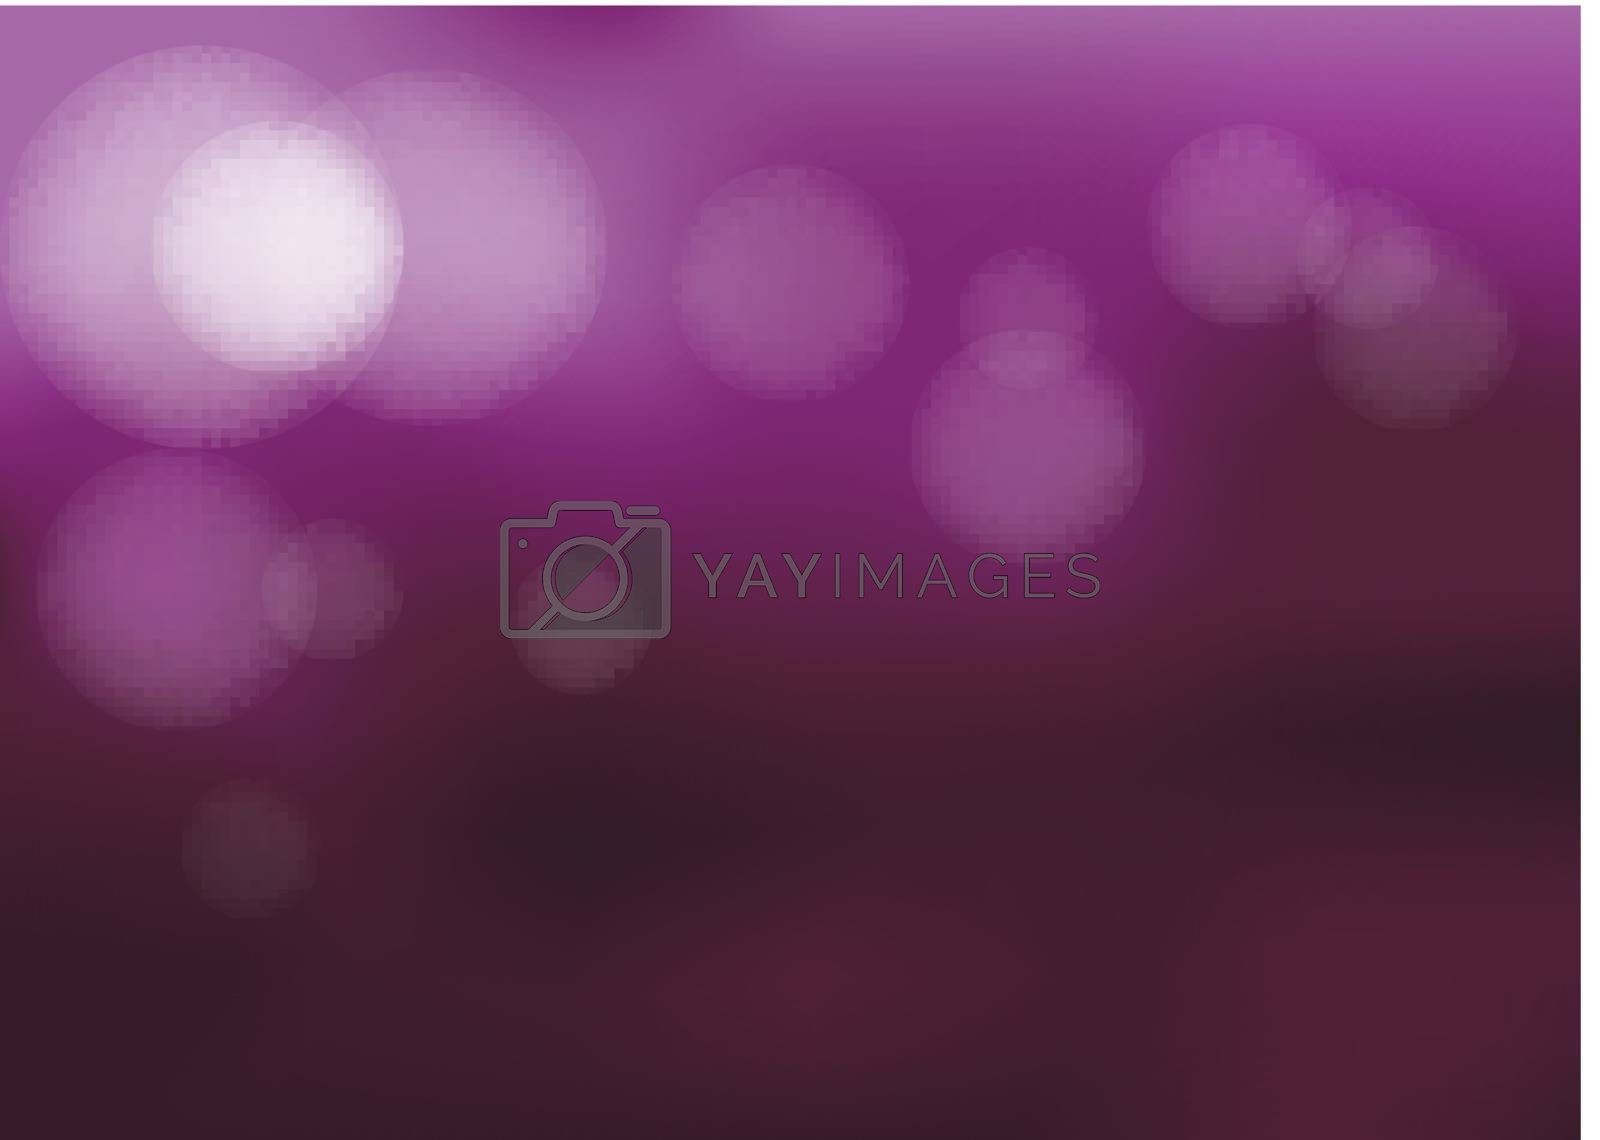 Illustration of a lavender colored template